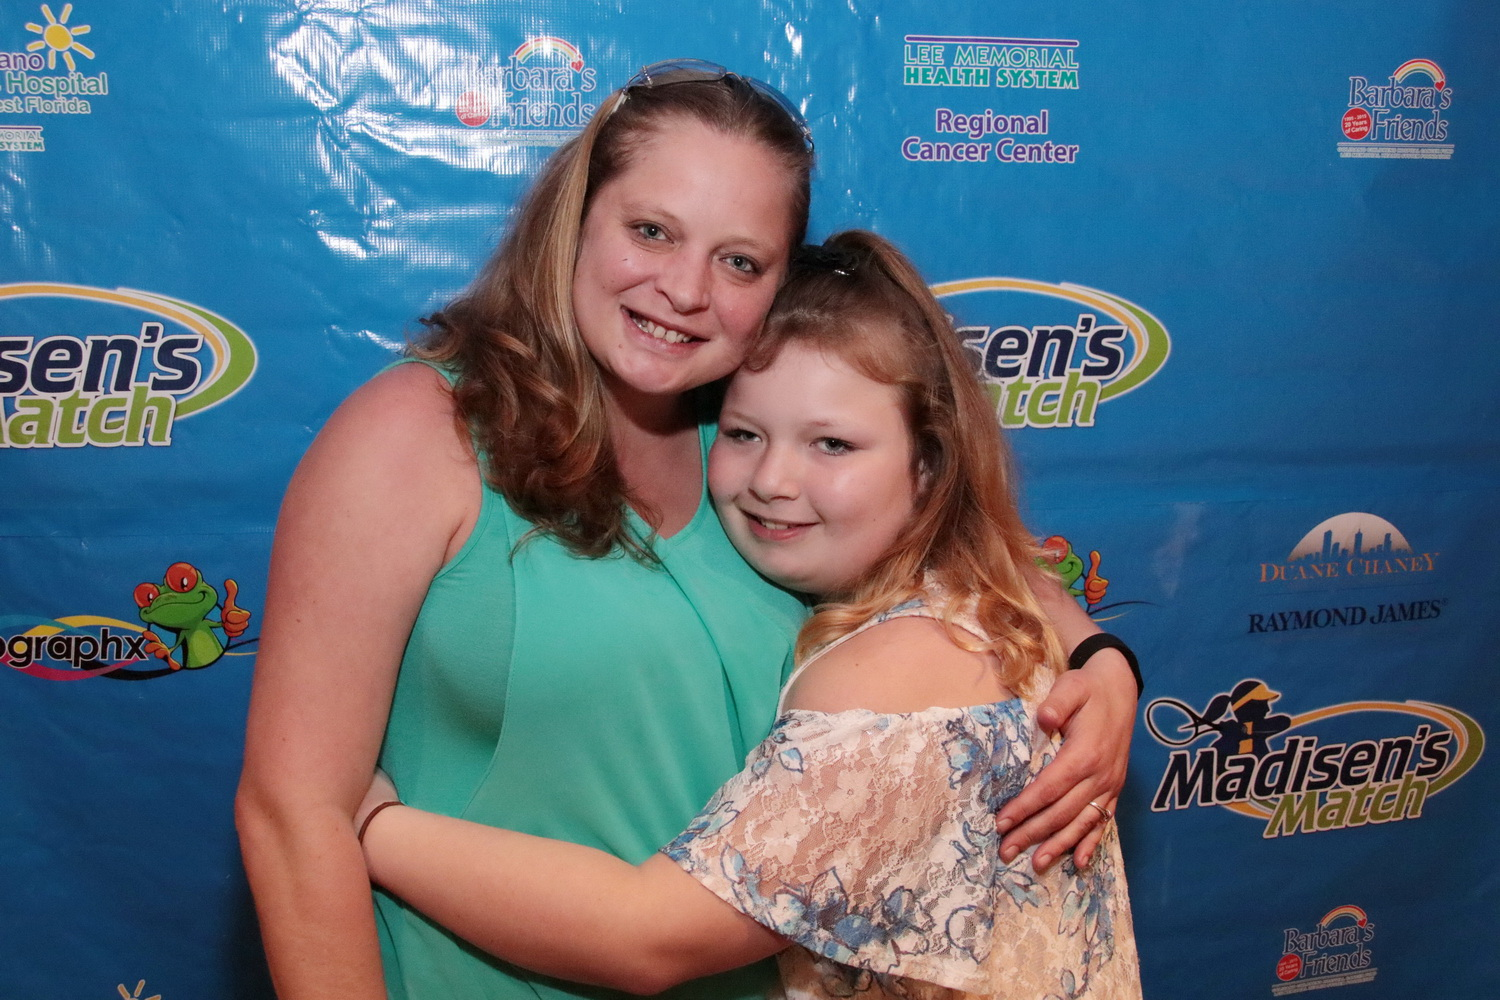 Madisen's Match raises more than $650,000 for cancer treatment charities